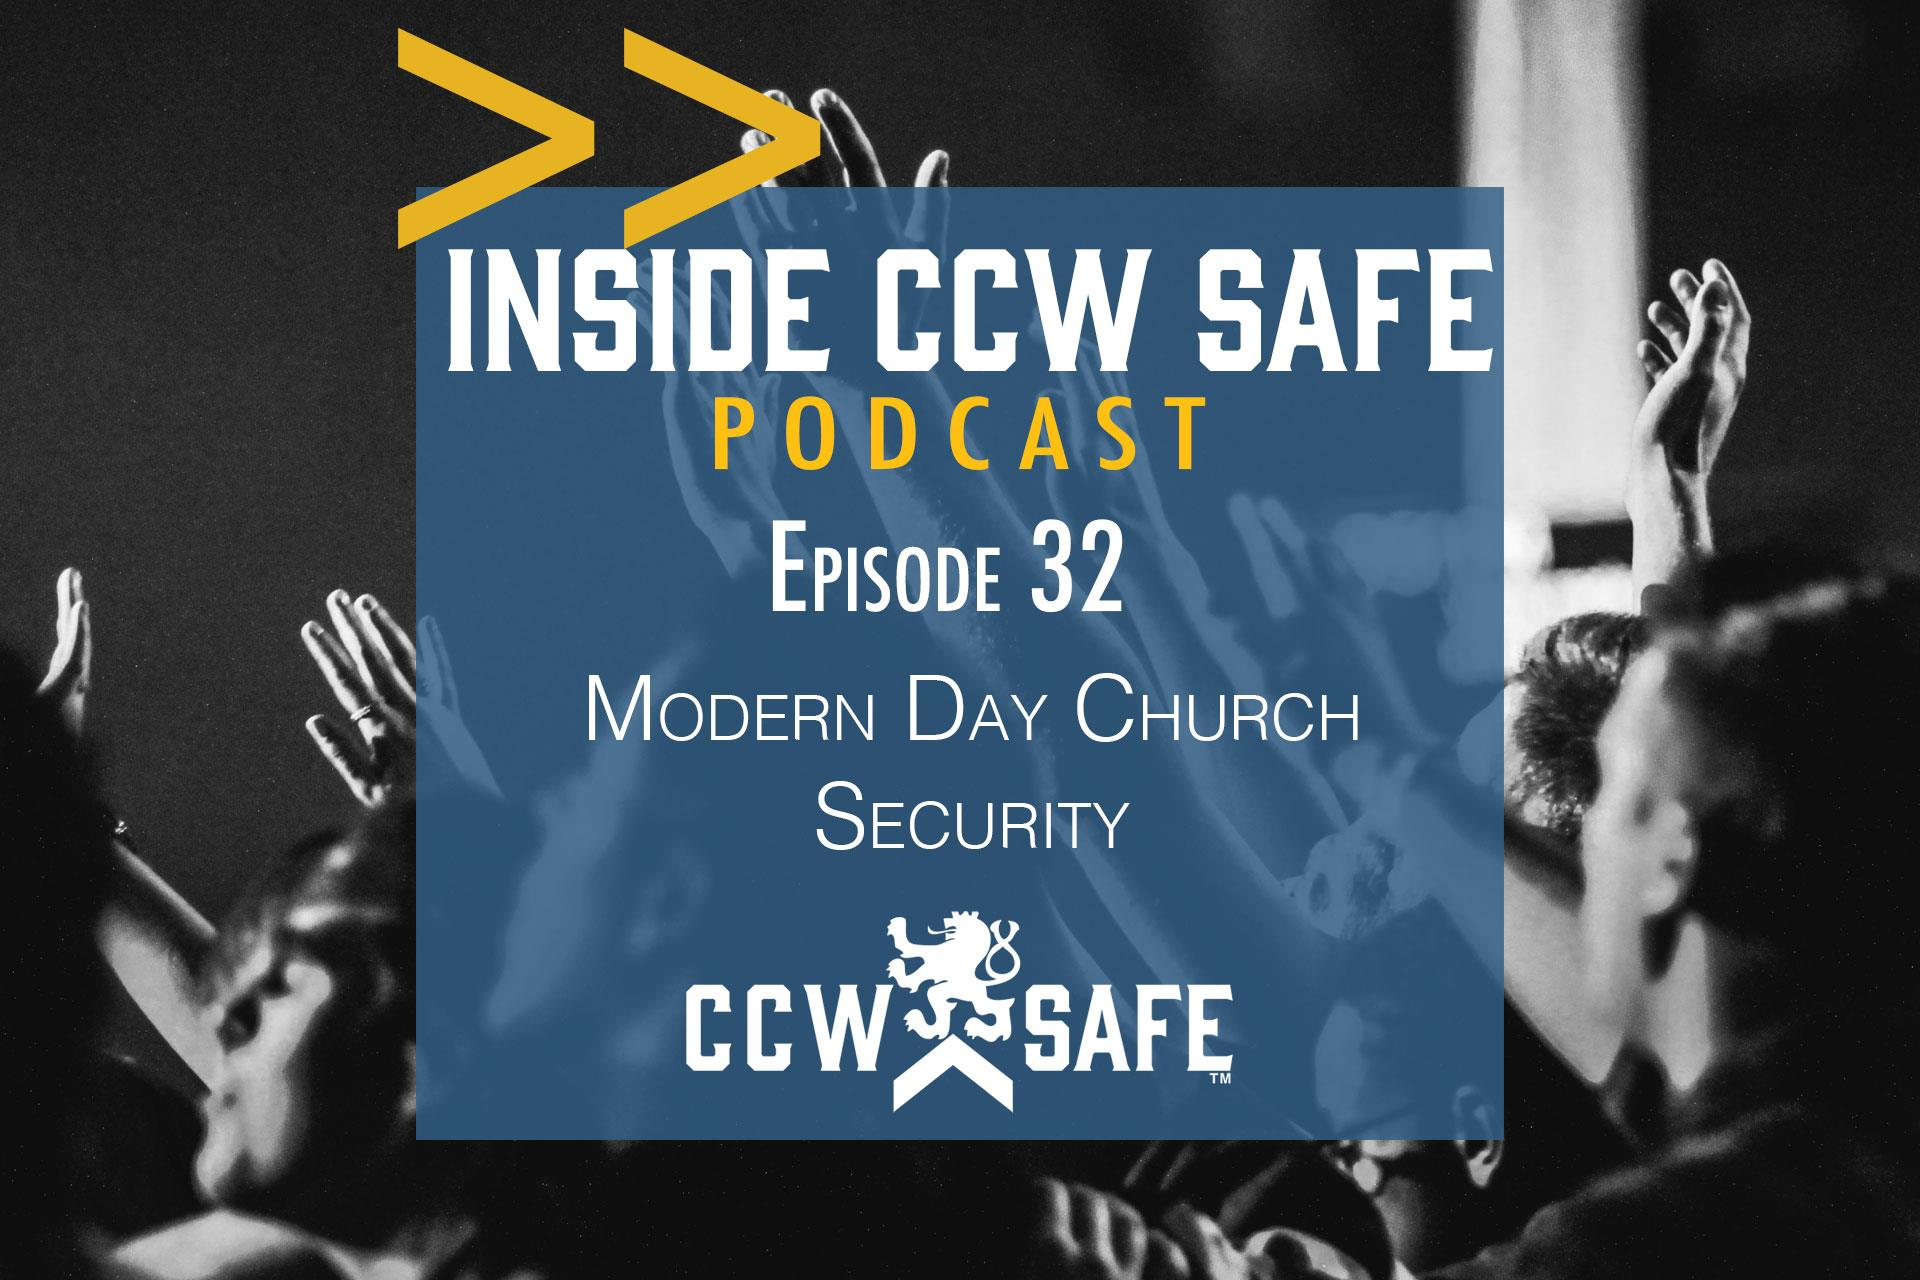 Inside CCW Safe Podcast-Episode 31: Modern Day Church Security